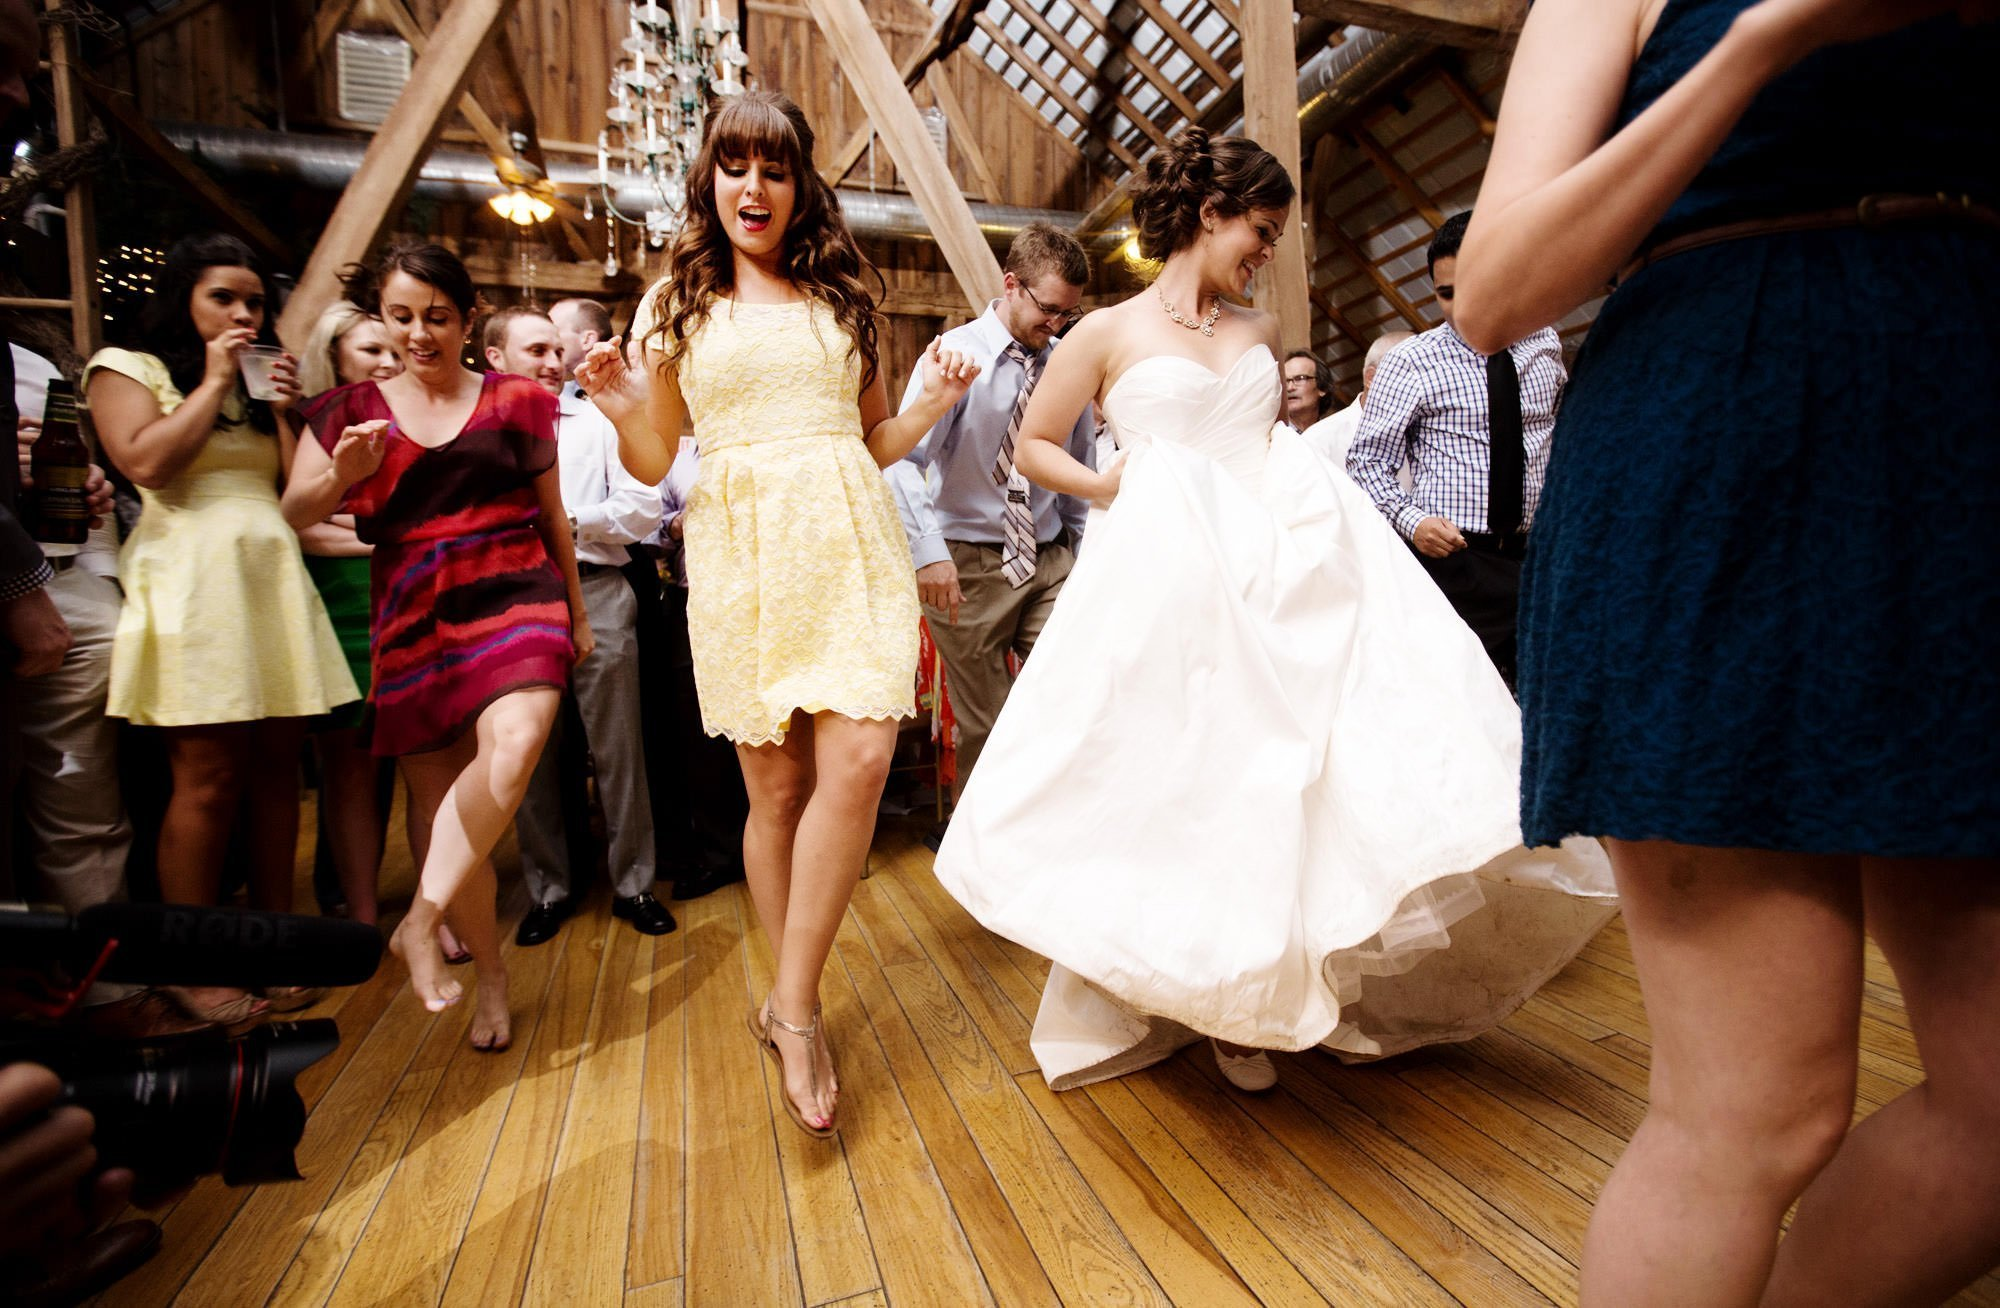 Guests dance during the wedding reception at Chanteclaire Farm.